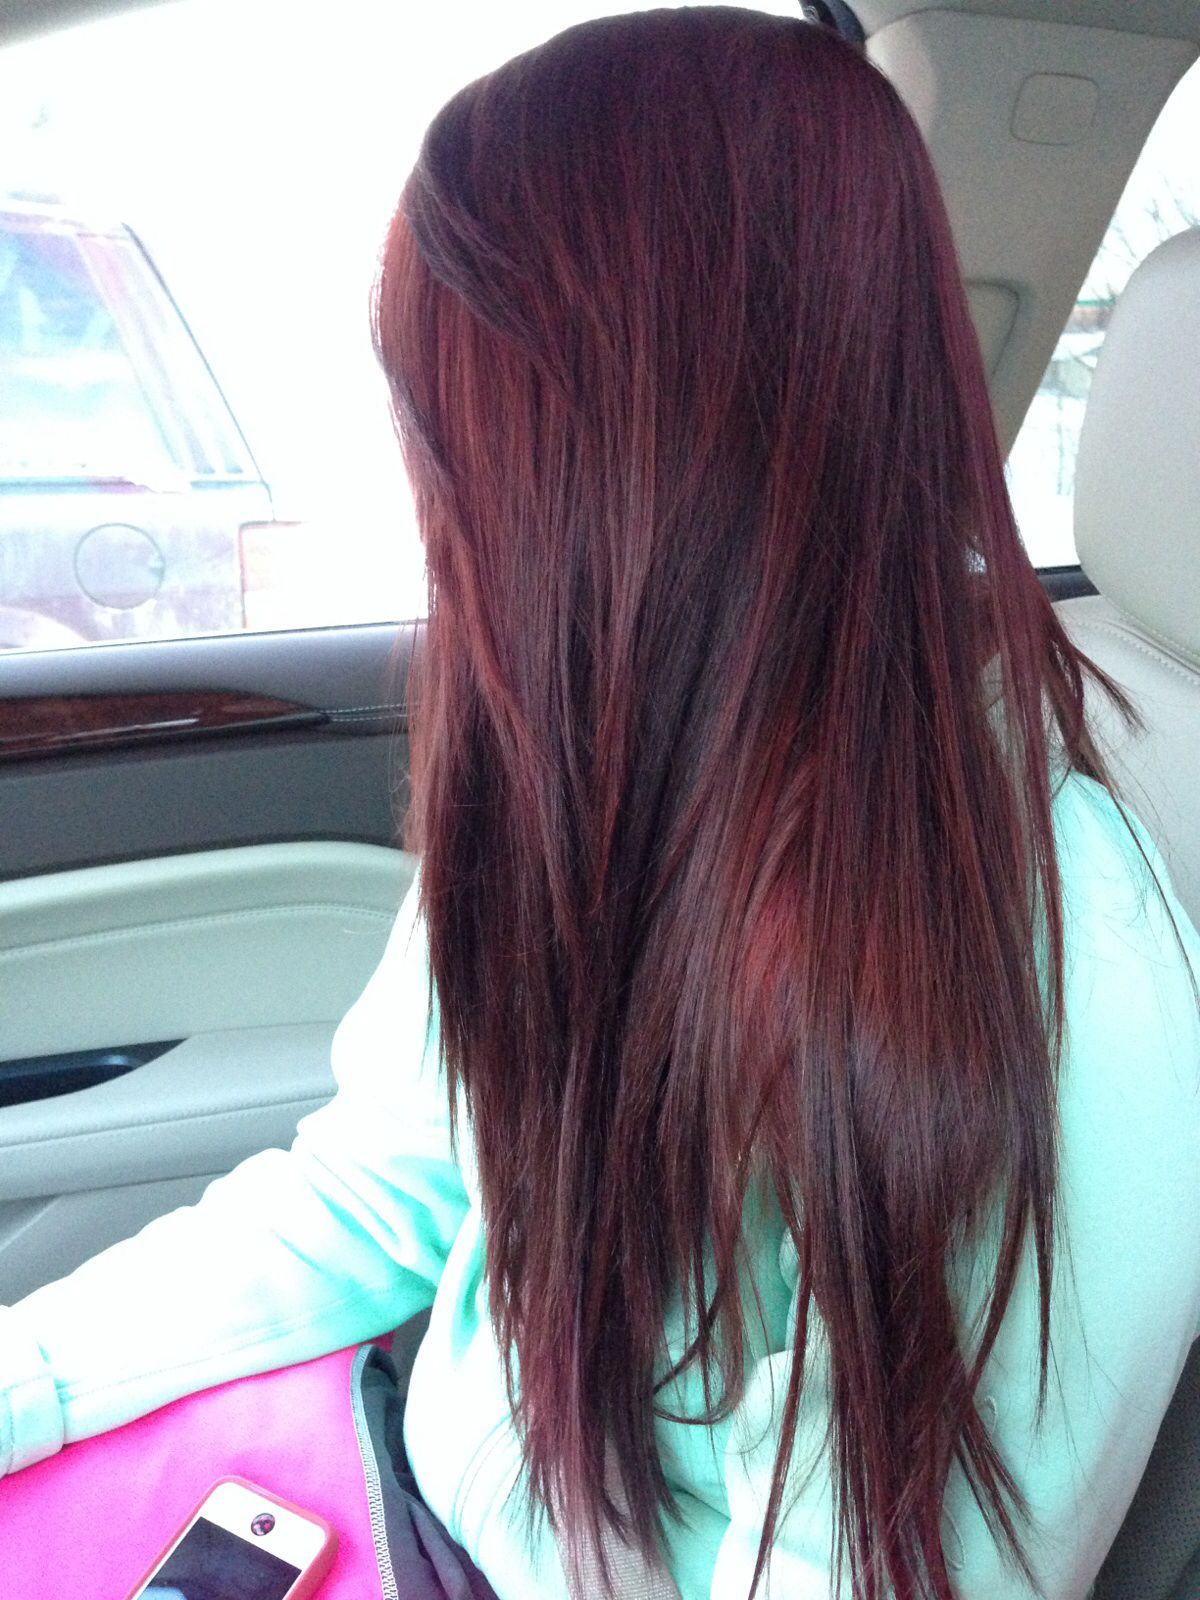 14 wonderful dark colored hairstyles plum hair colour plum hair dark hair cherry coke highlights if only i could convince myself to do it solutioingenieria Gallery